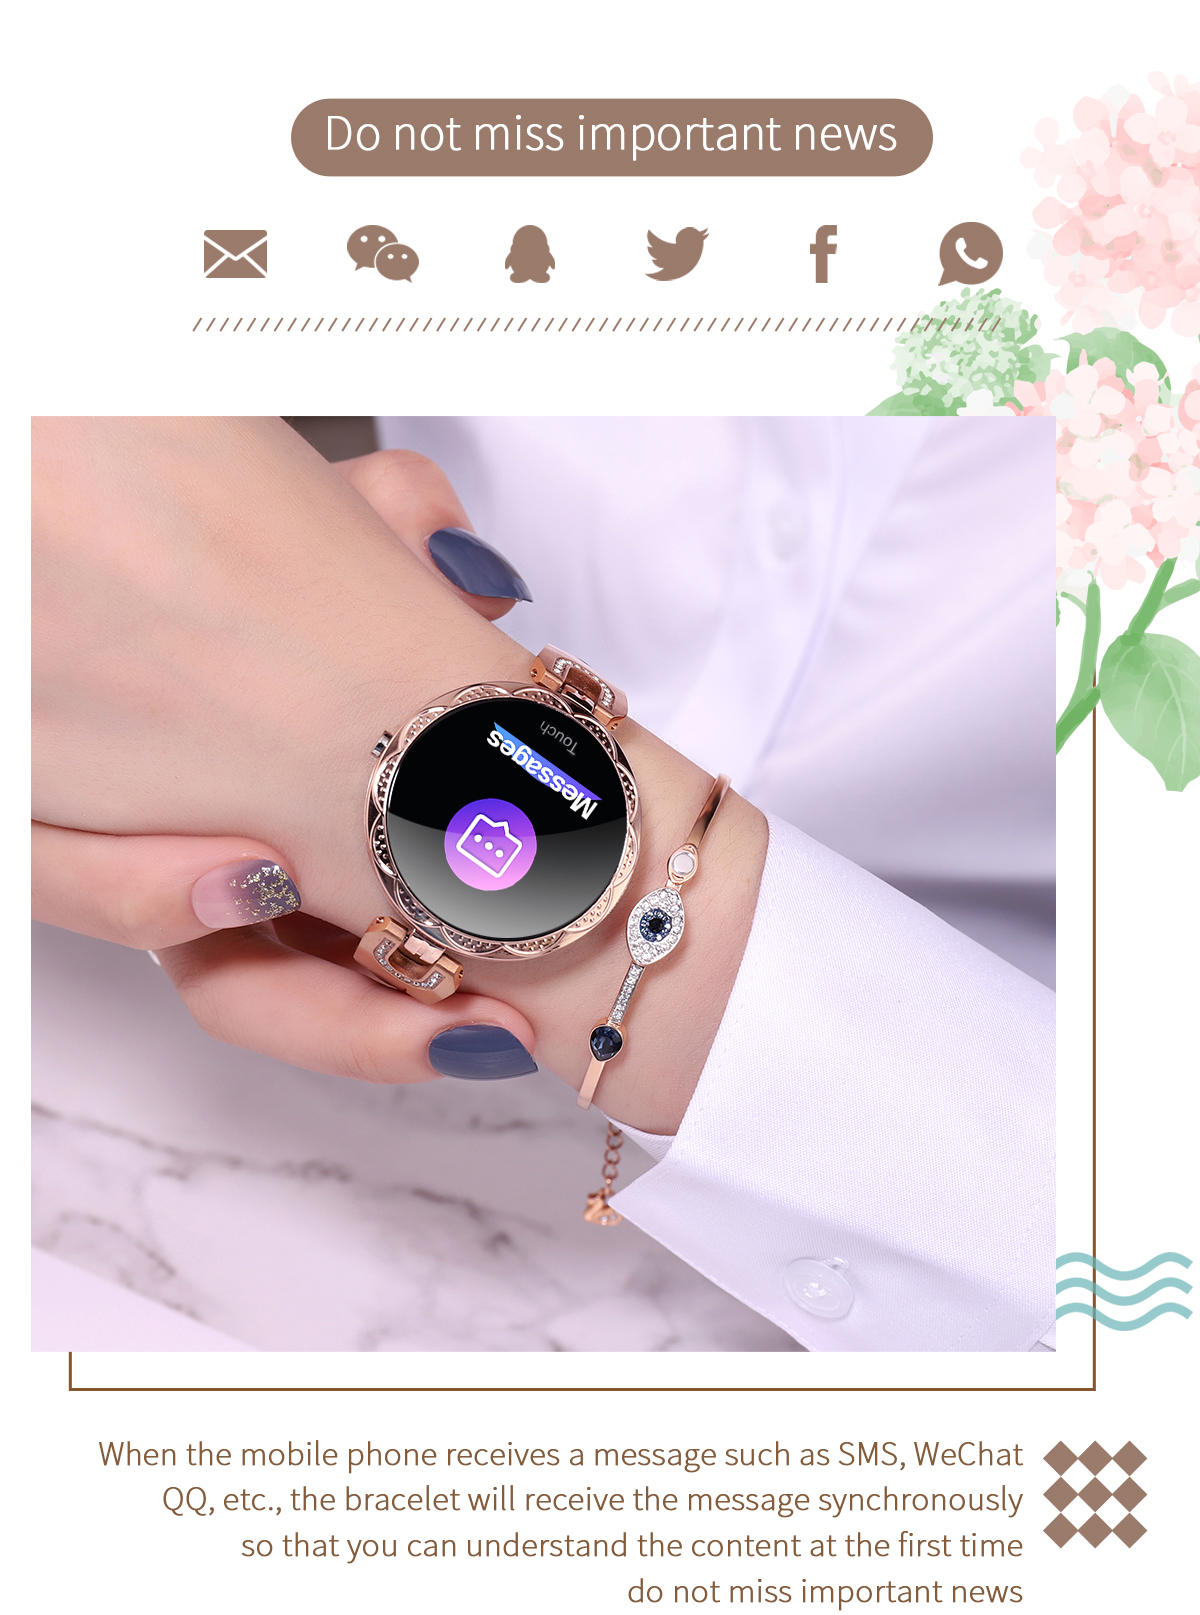 H851e7e421bab4c258bd6523e674c5a74a COBRAFLY AK15 Smart Watch Women Bracelet Heart Rate Monitoring IP67 Waterproof Fitness Tracker Ladies Watches for Xiaomi Iphone